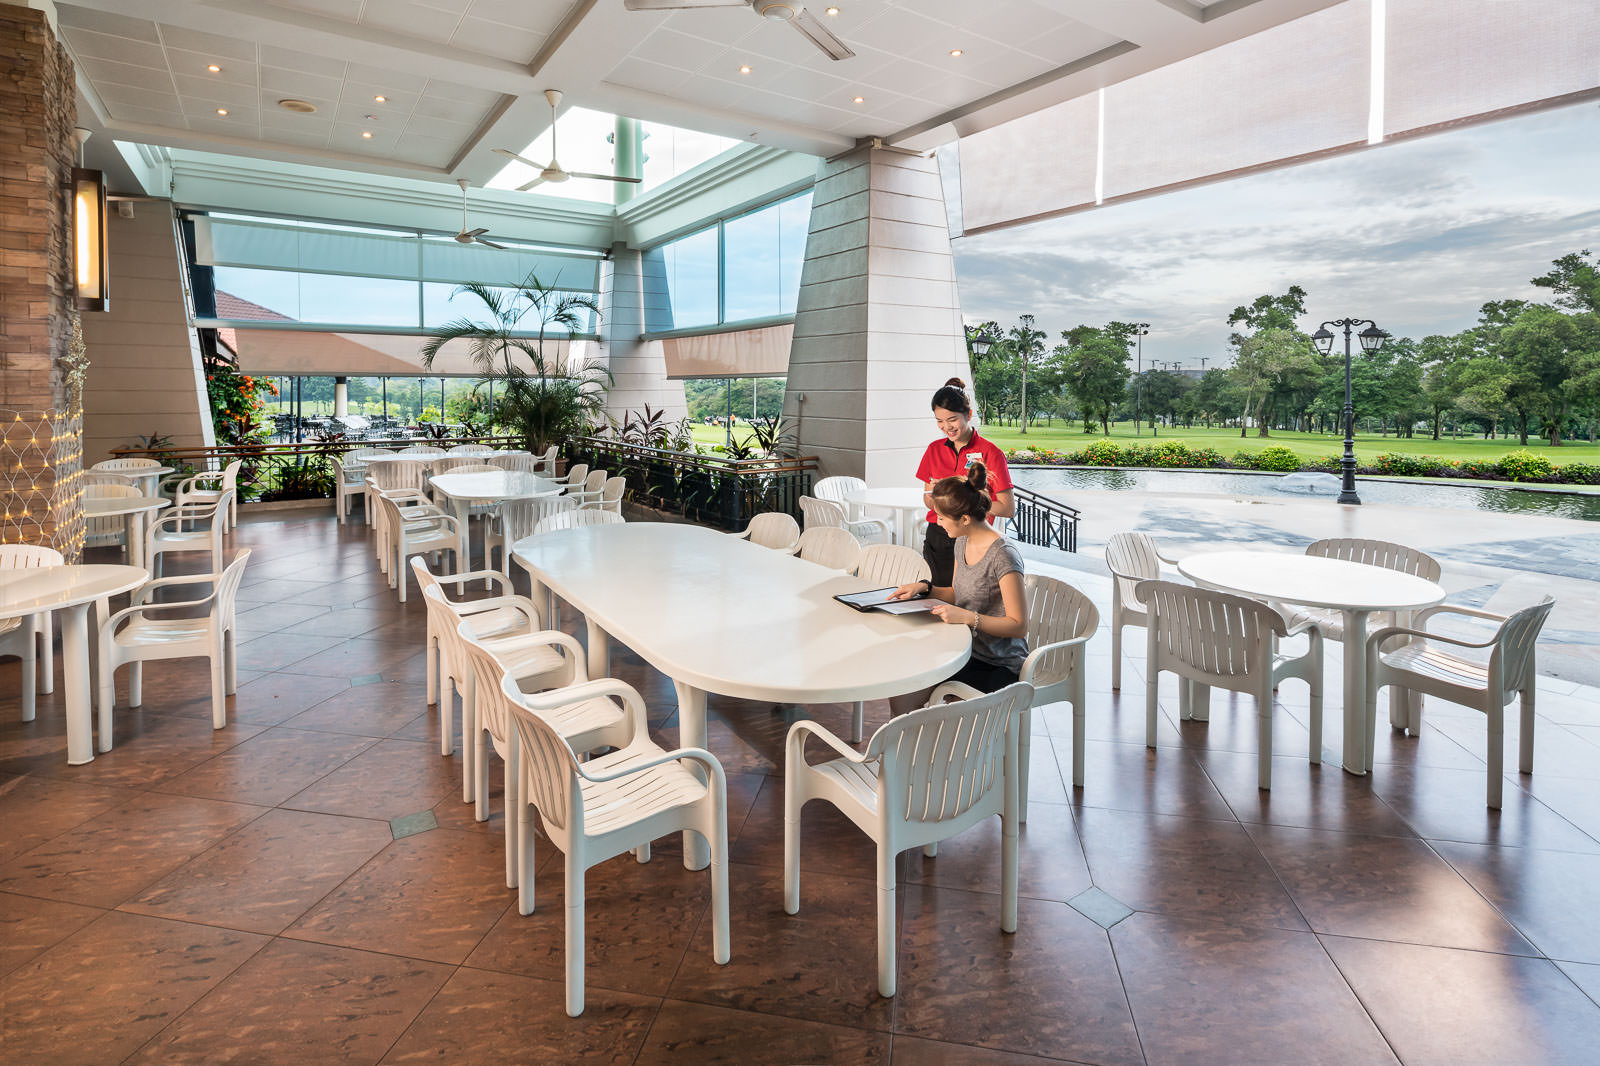 Interior photography of the seletar country club in singapore showing a waitress serving a client in the terrace restaurant